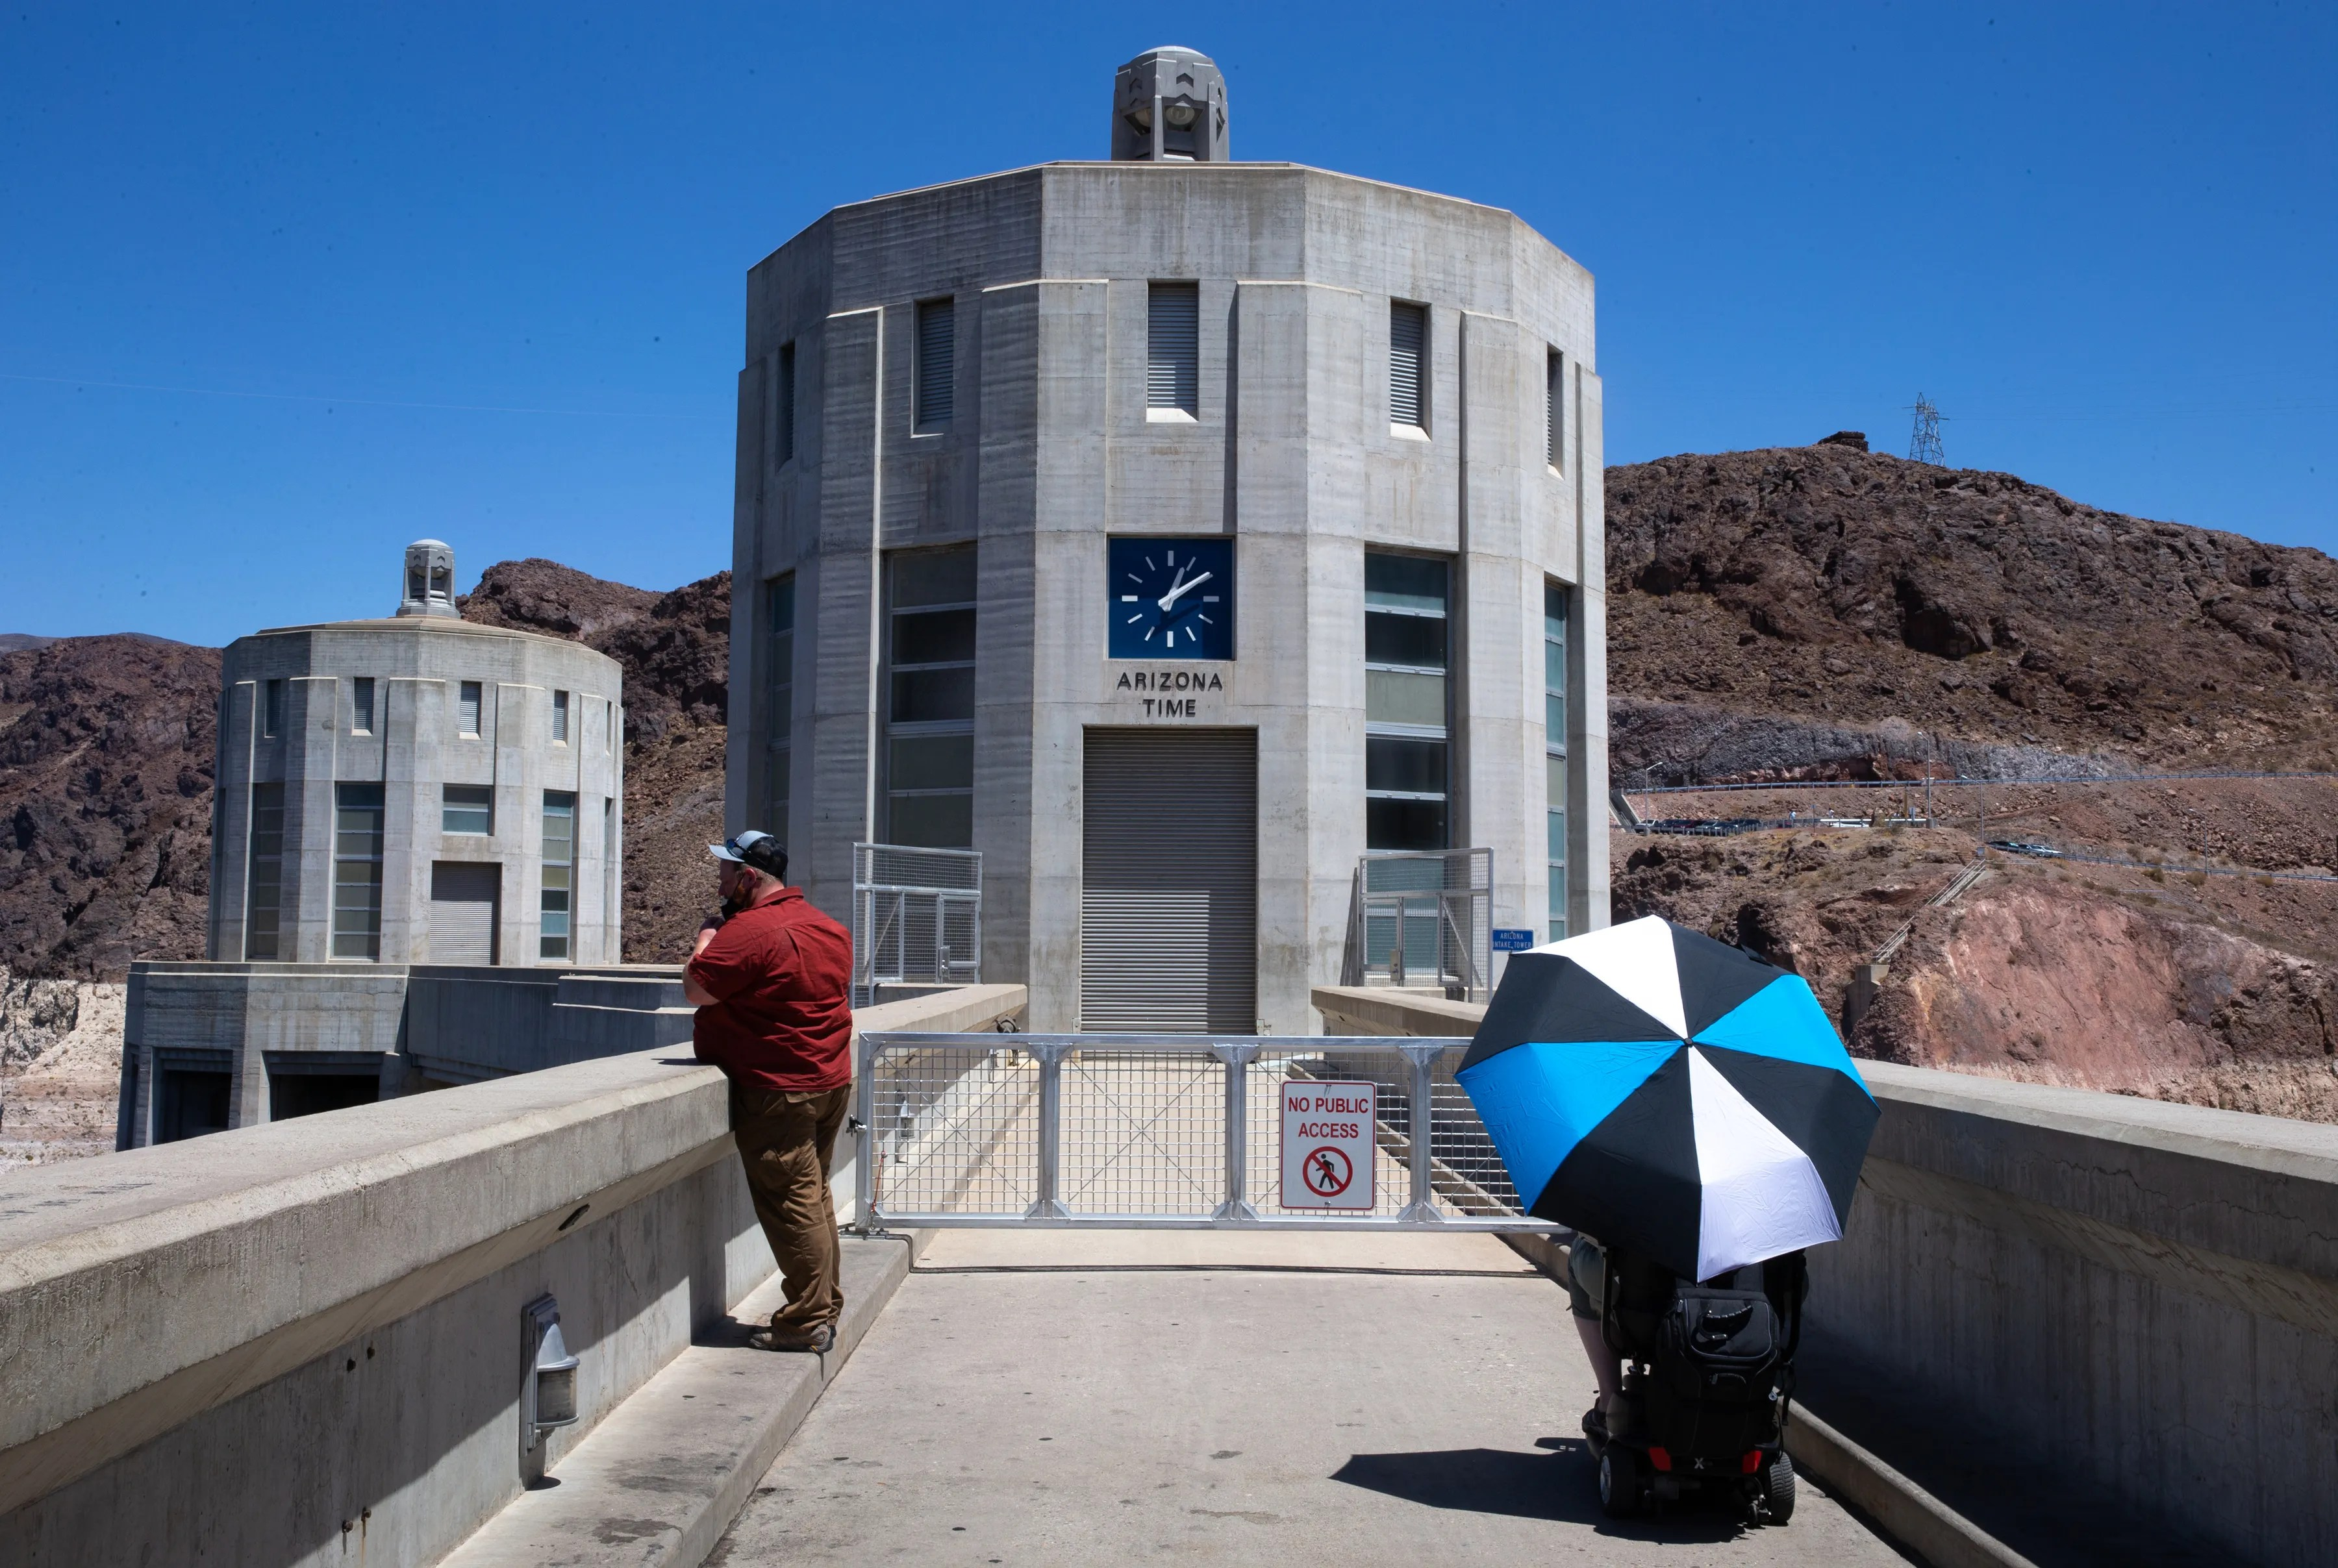 The intake towers on the Arizona side, May 12, 2021, at Hoover Dam, on the Arizona/Nevada border.